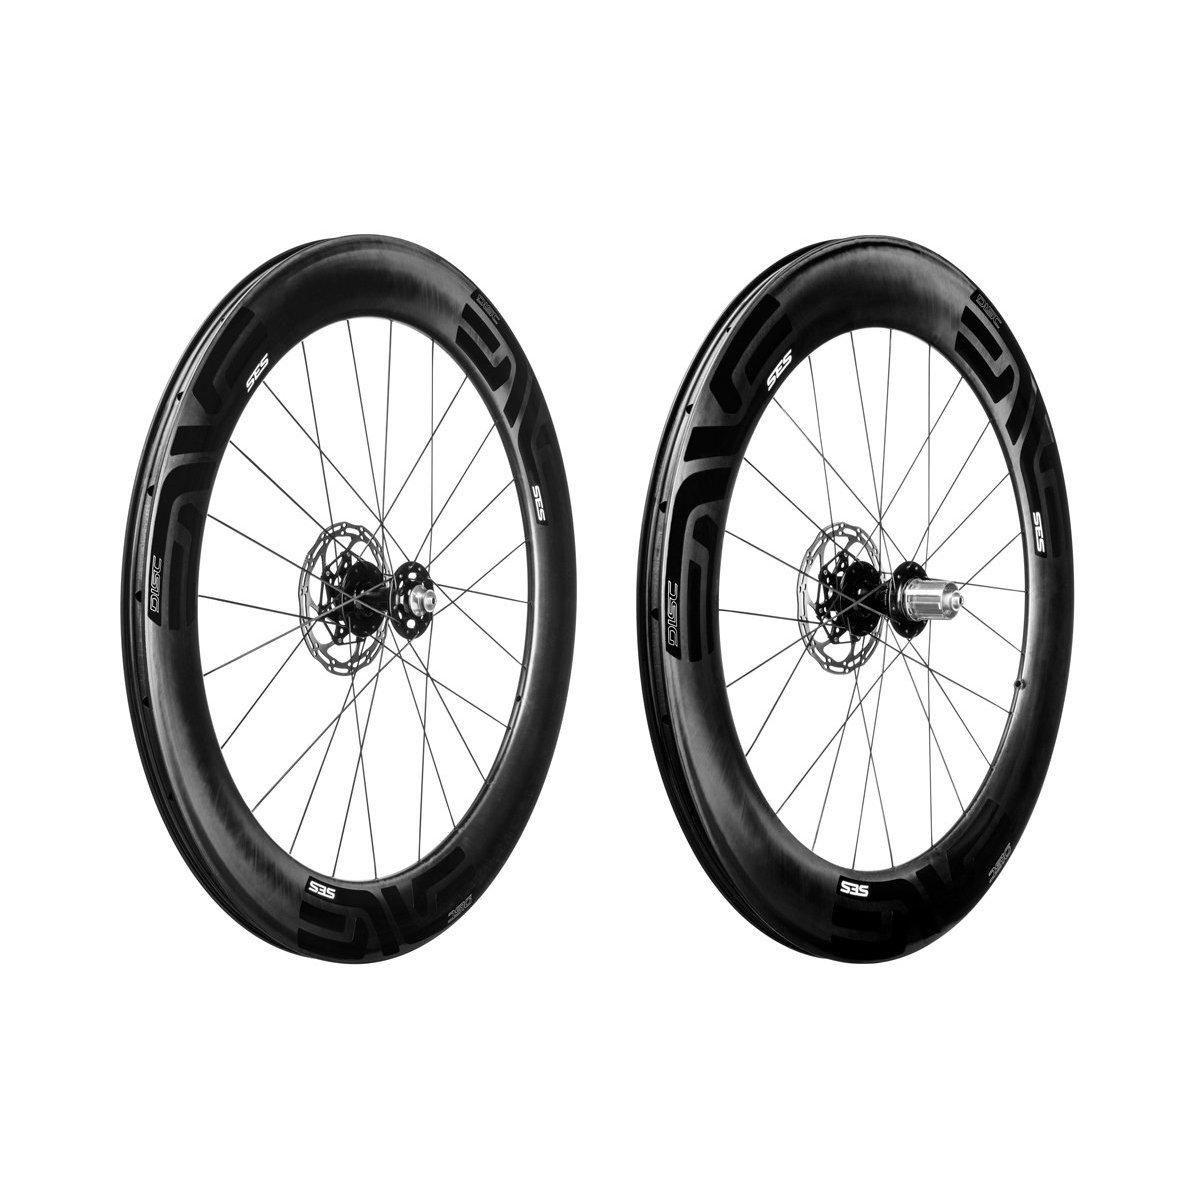 ENVE-ENVE SES 7.8 Disc Wheelset - ENVE Alloy Road Hubs-Clincher/Shimano-EN00781003104066-saddleback-elite-performance-cycling